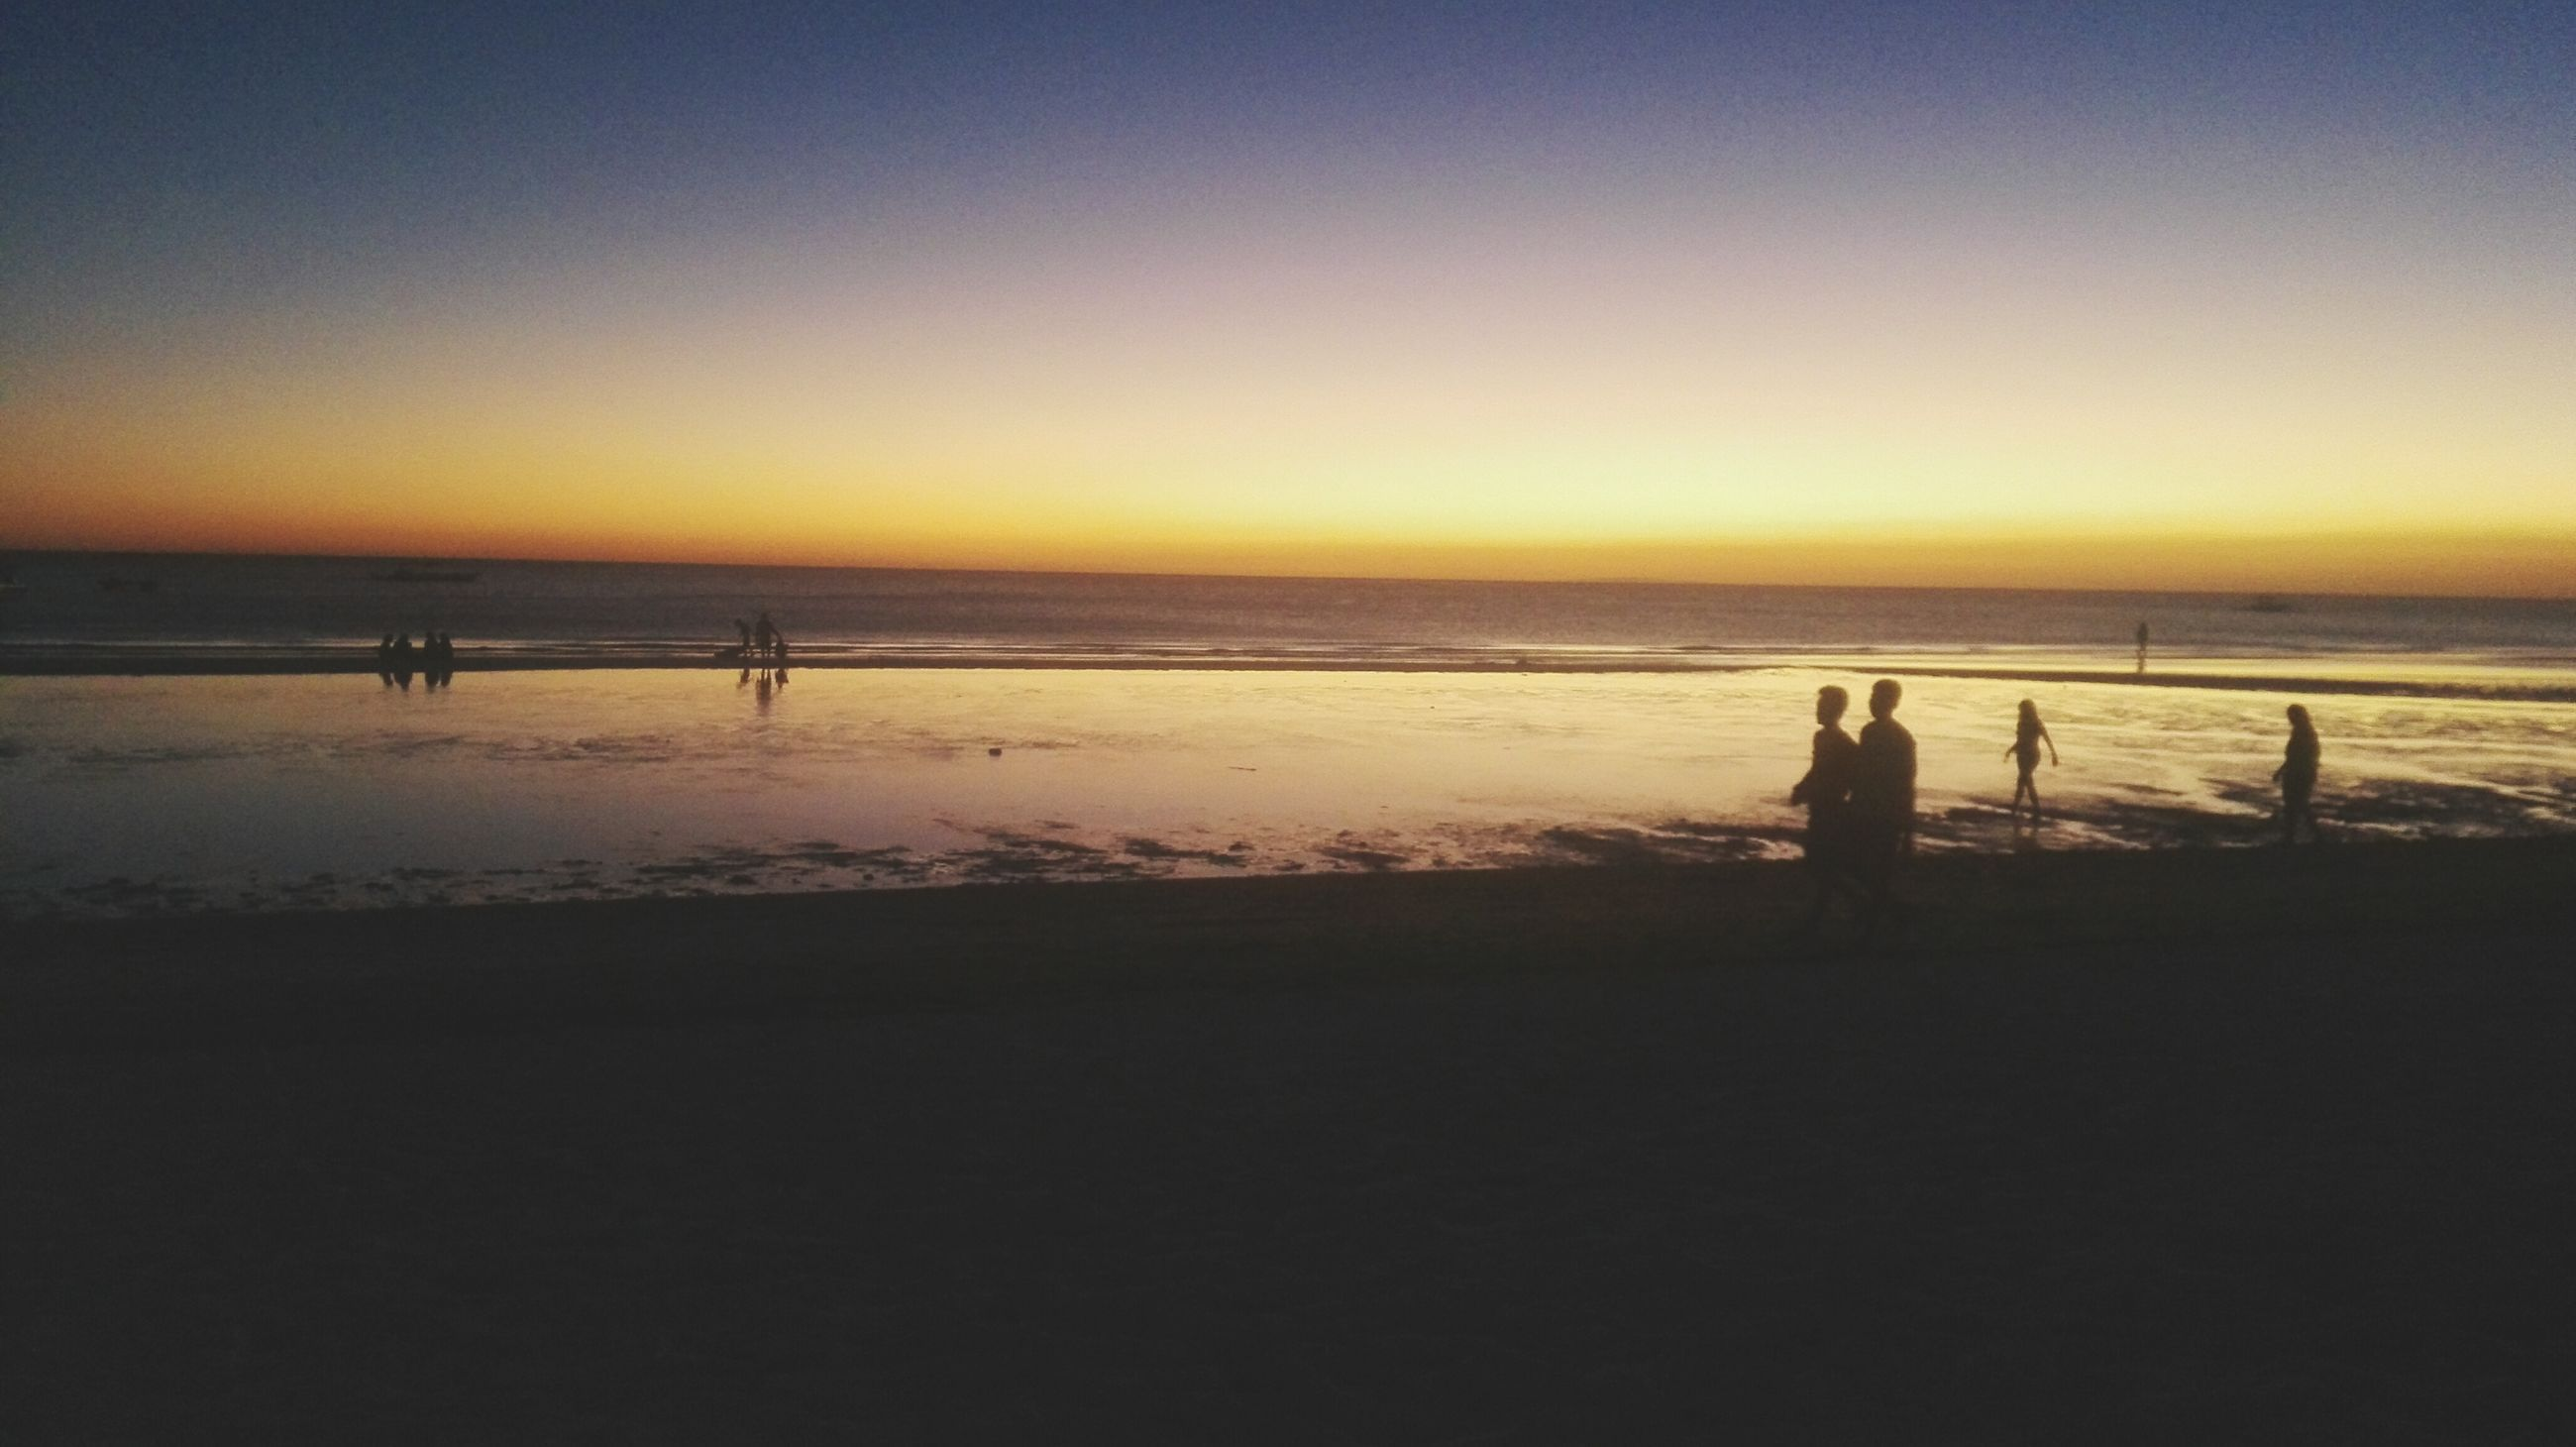 beach, sea, sunset, water, horizon over water, silhouette, shore, leisure activity, lifestyles, sand, scenics, beauty in nature, tranquil scene, copy space, men, vacations, tranquility, clear sky, orange color